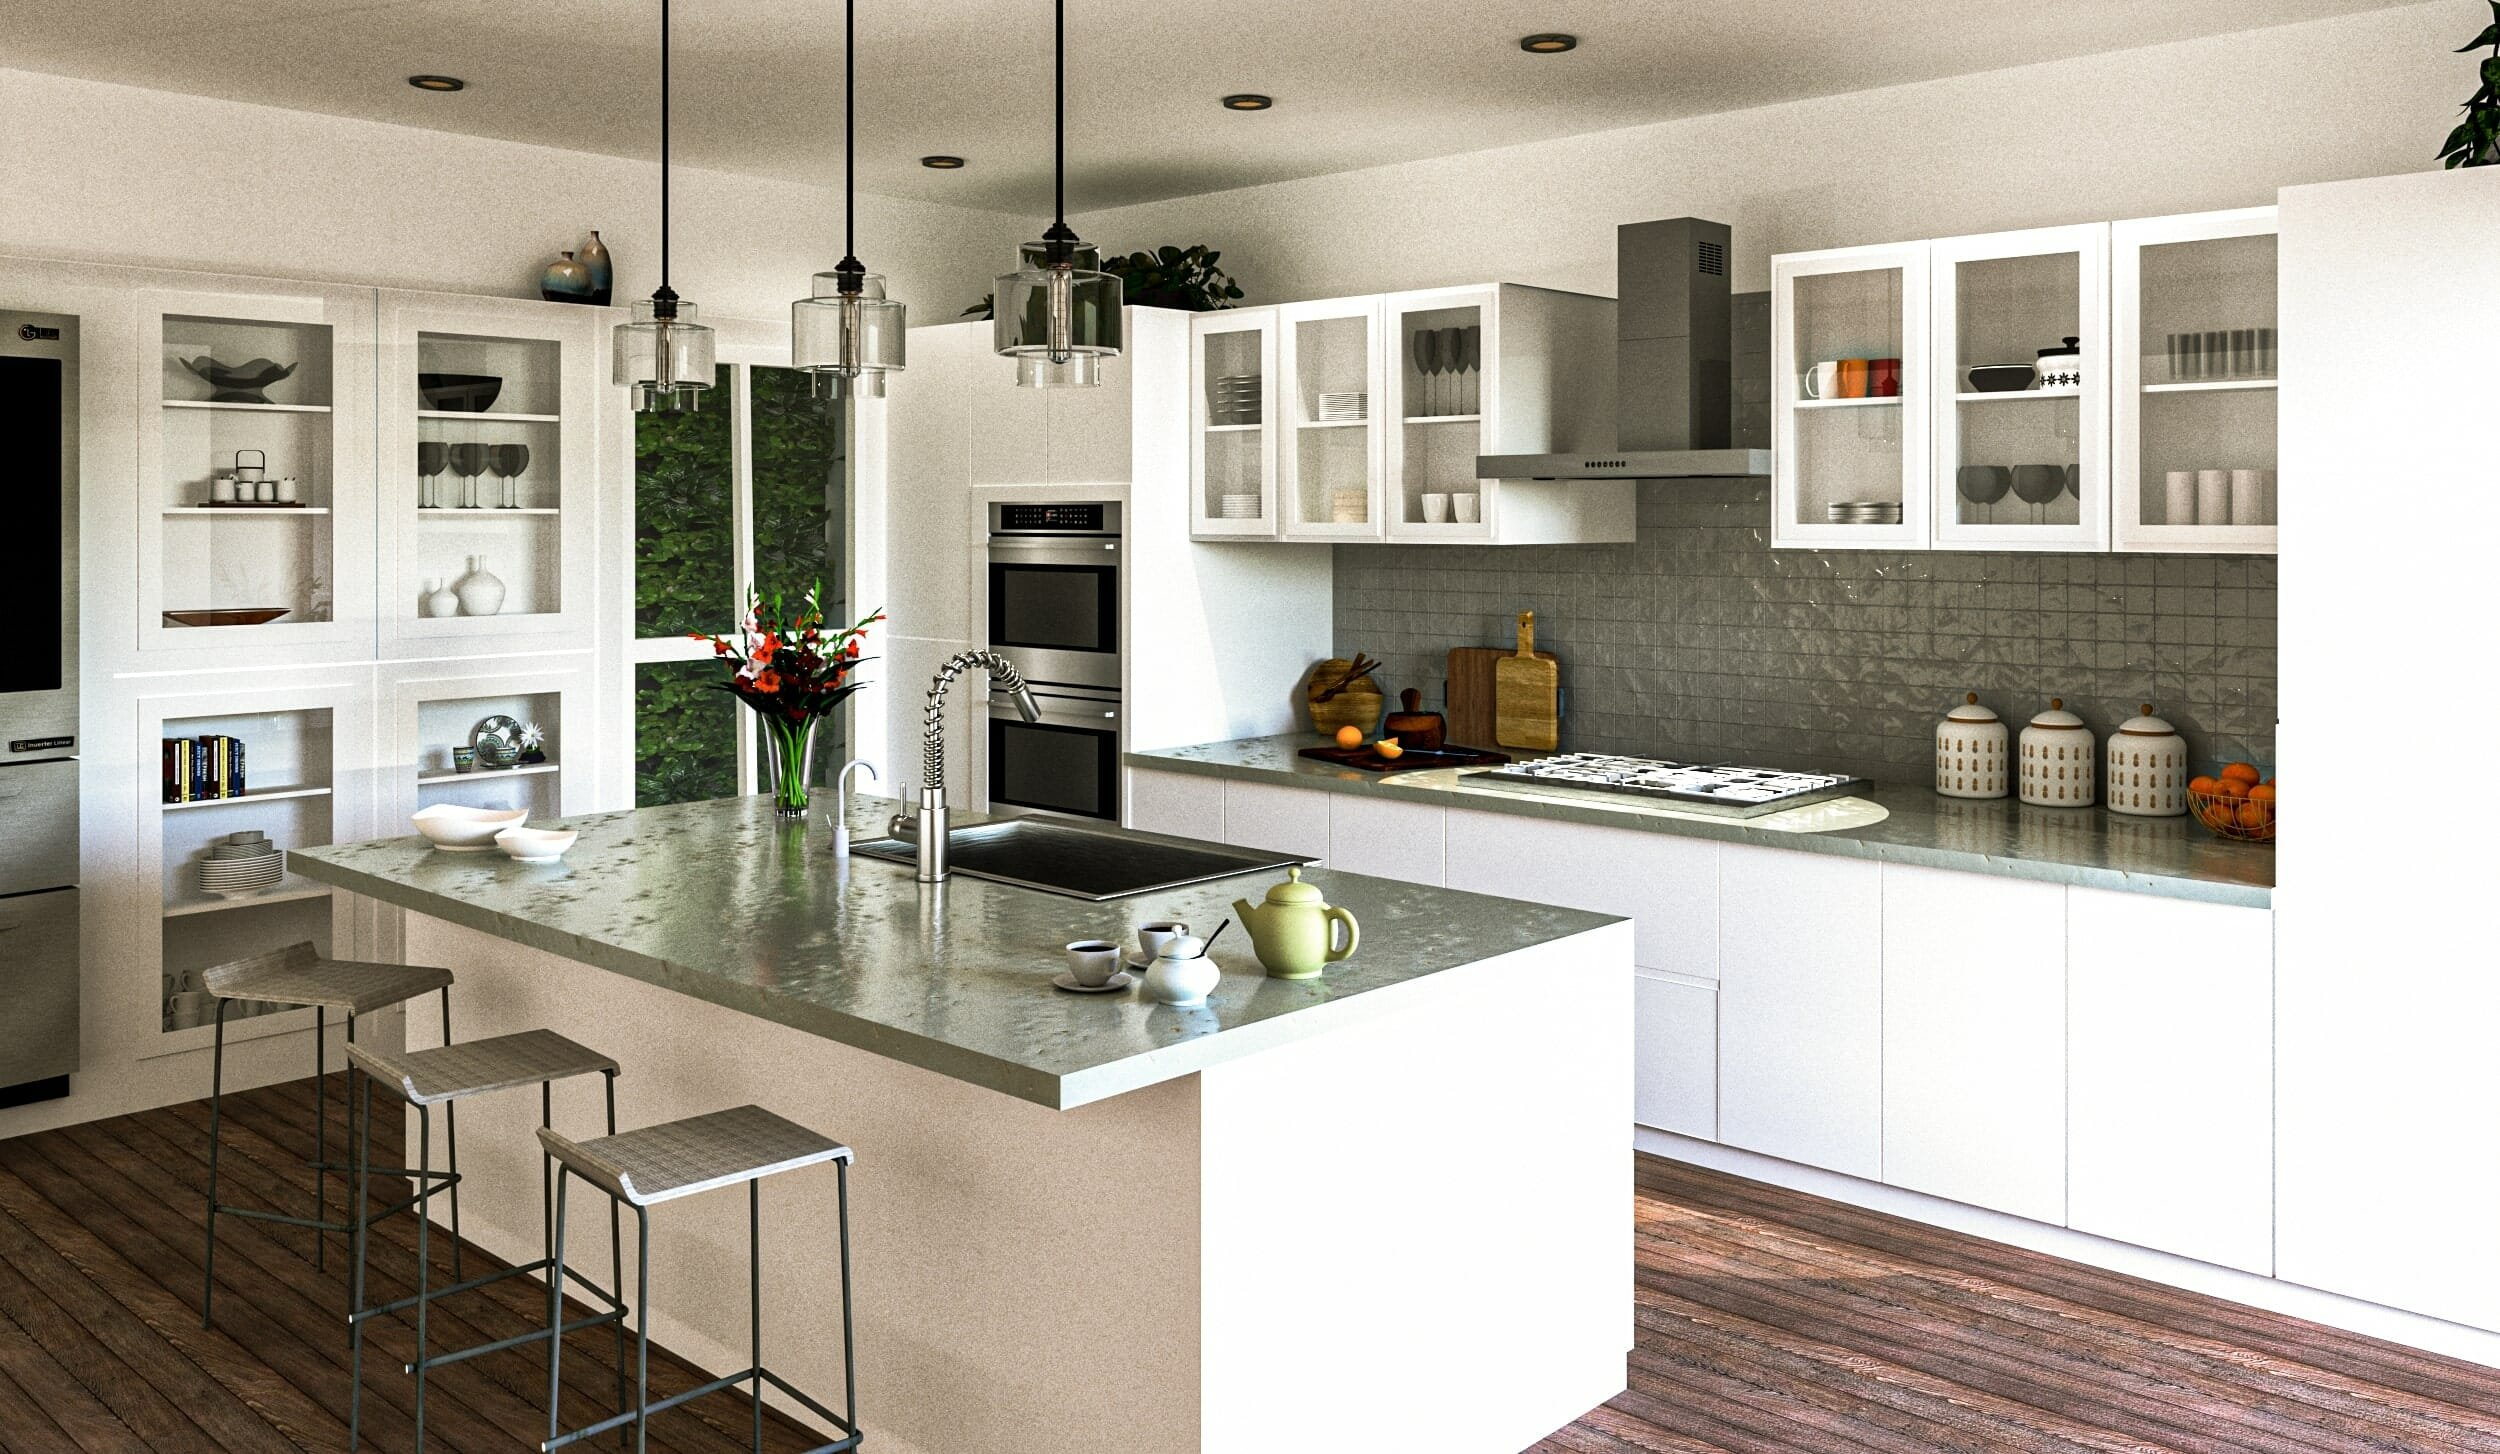 Contemporary kitchen by one of the top interior designers silicon valley - mini g